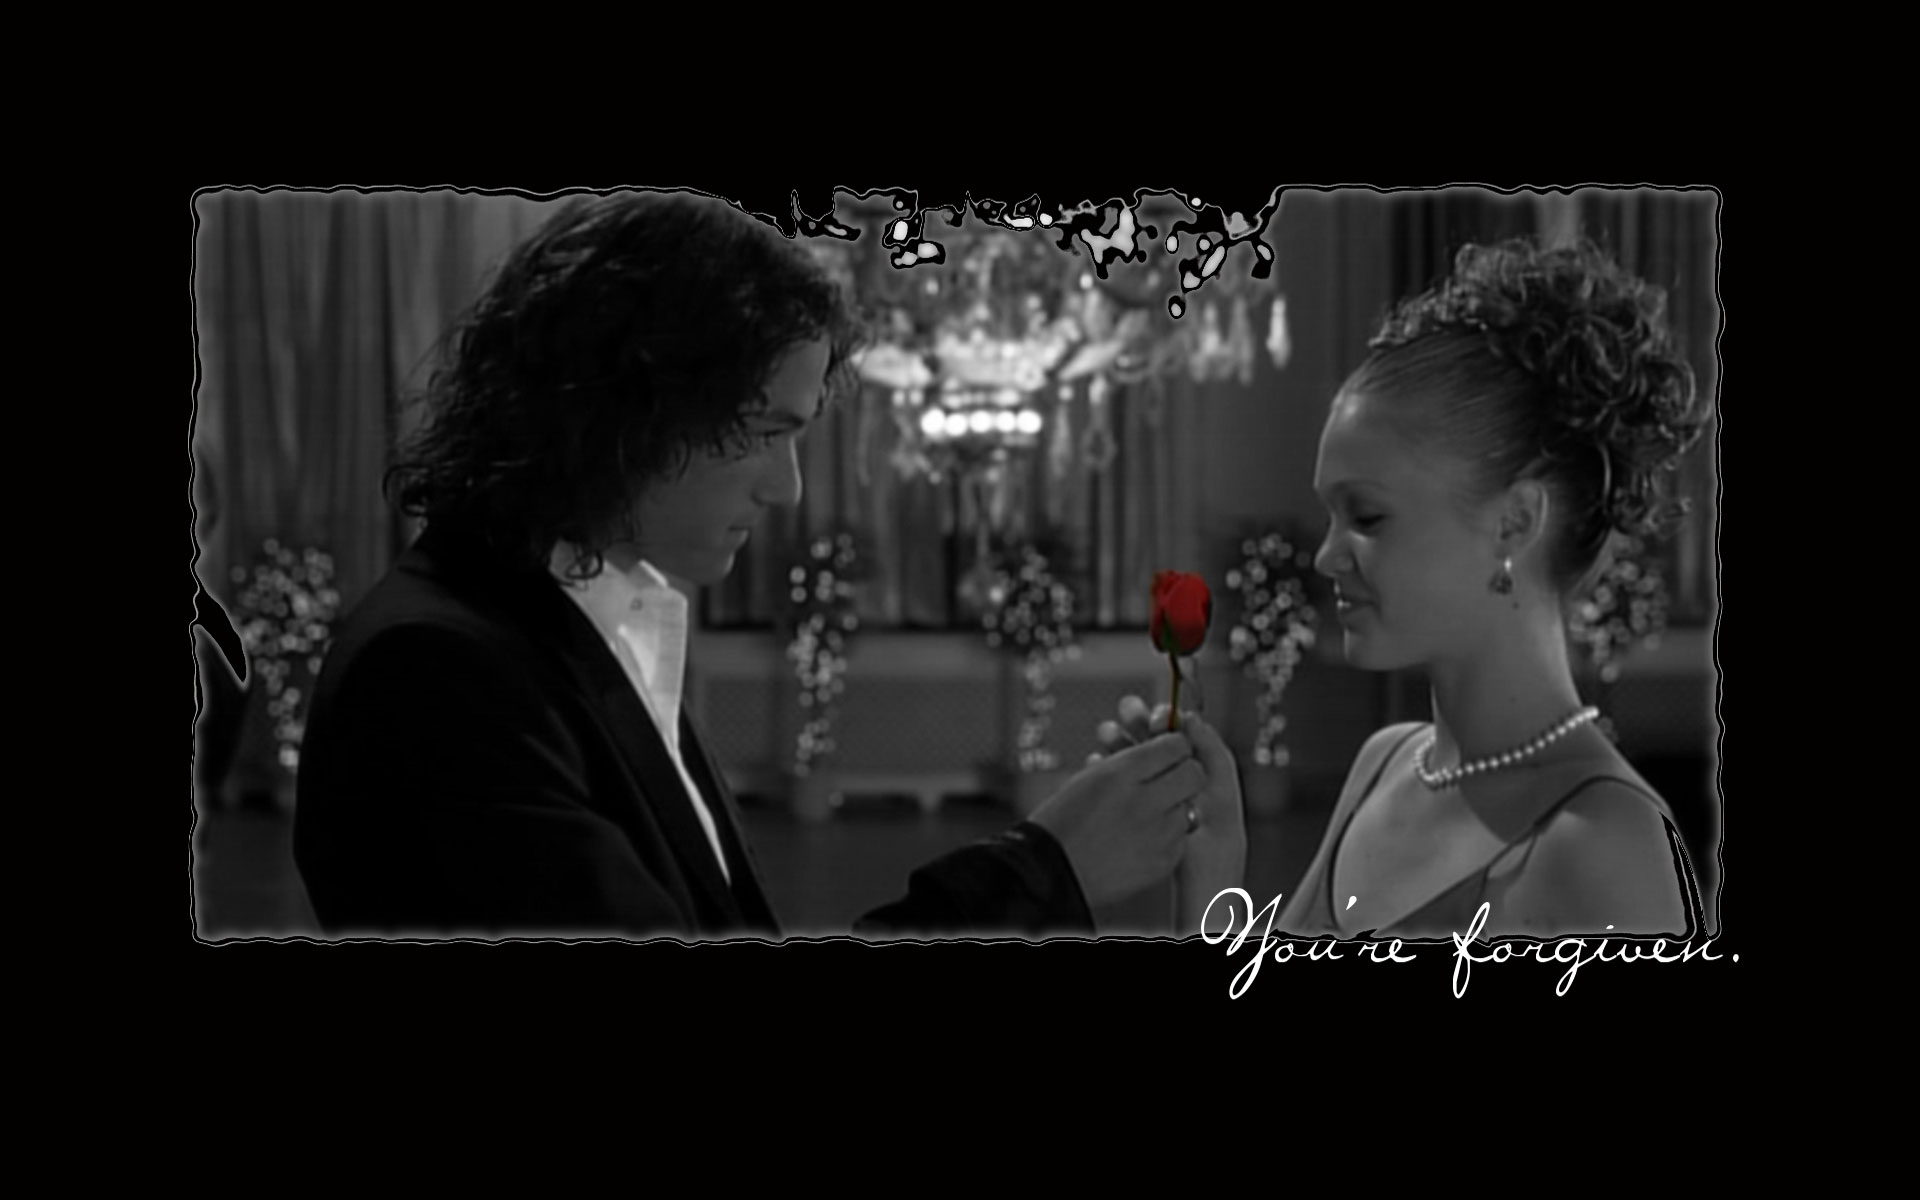 10 things i hate bout u 10 things i hate about you movie yify subtitles a movie like this doesn't exactly hit you over the head with its originality, and can only be as good as the actors.